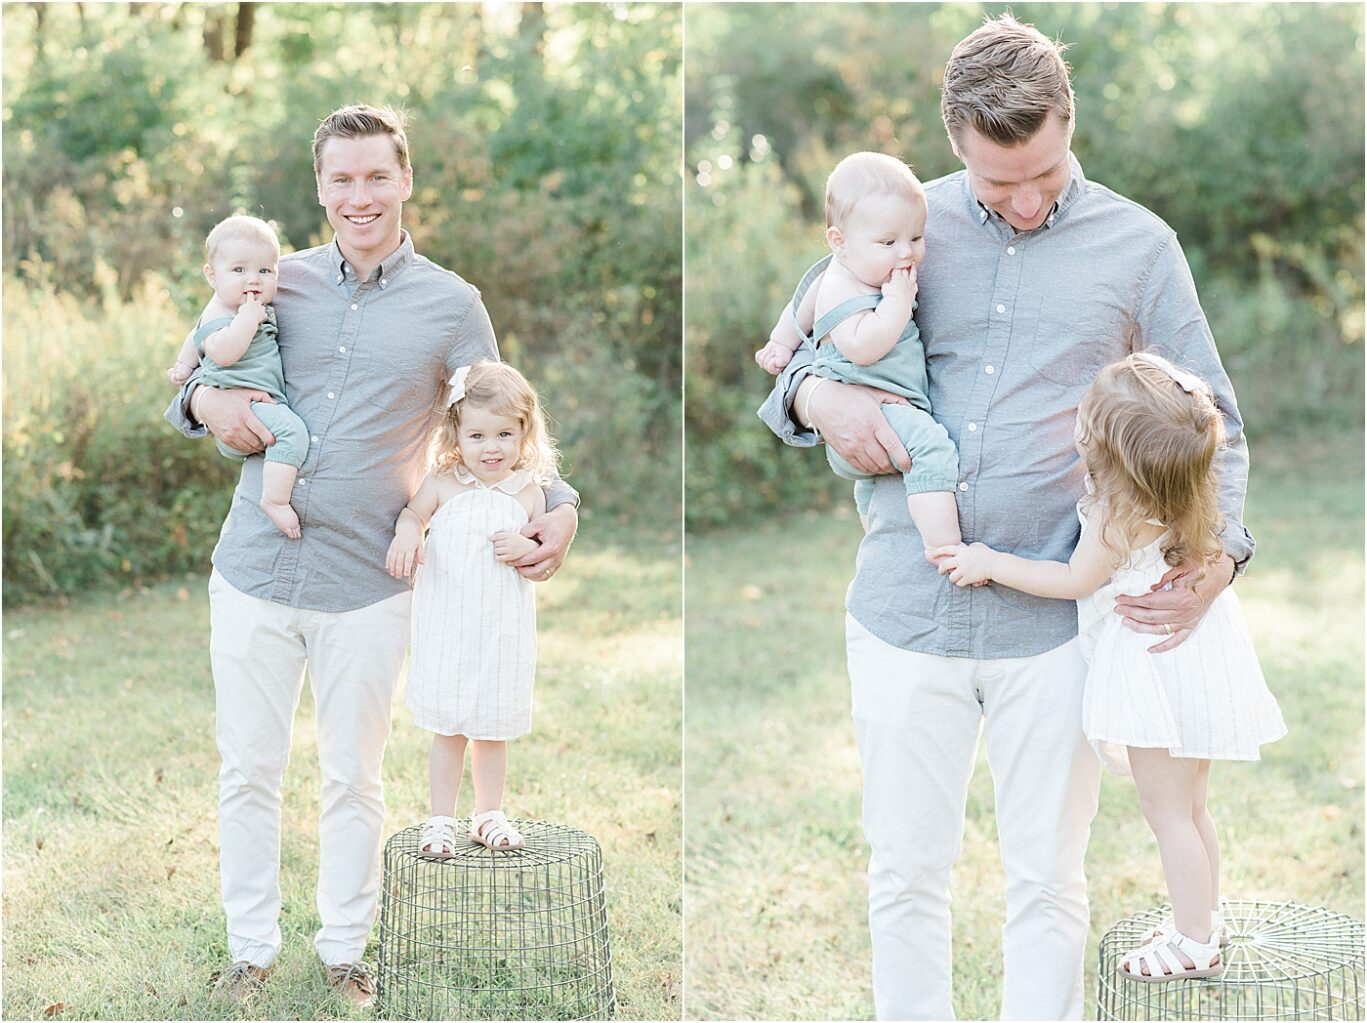 Dad with his son and daughter. Photos by Lindsay Konopa Photography.